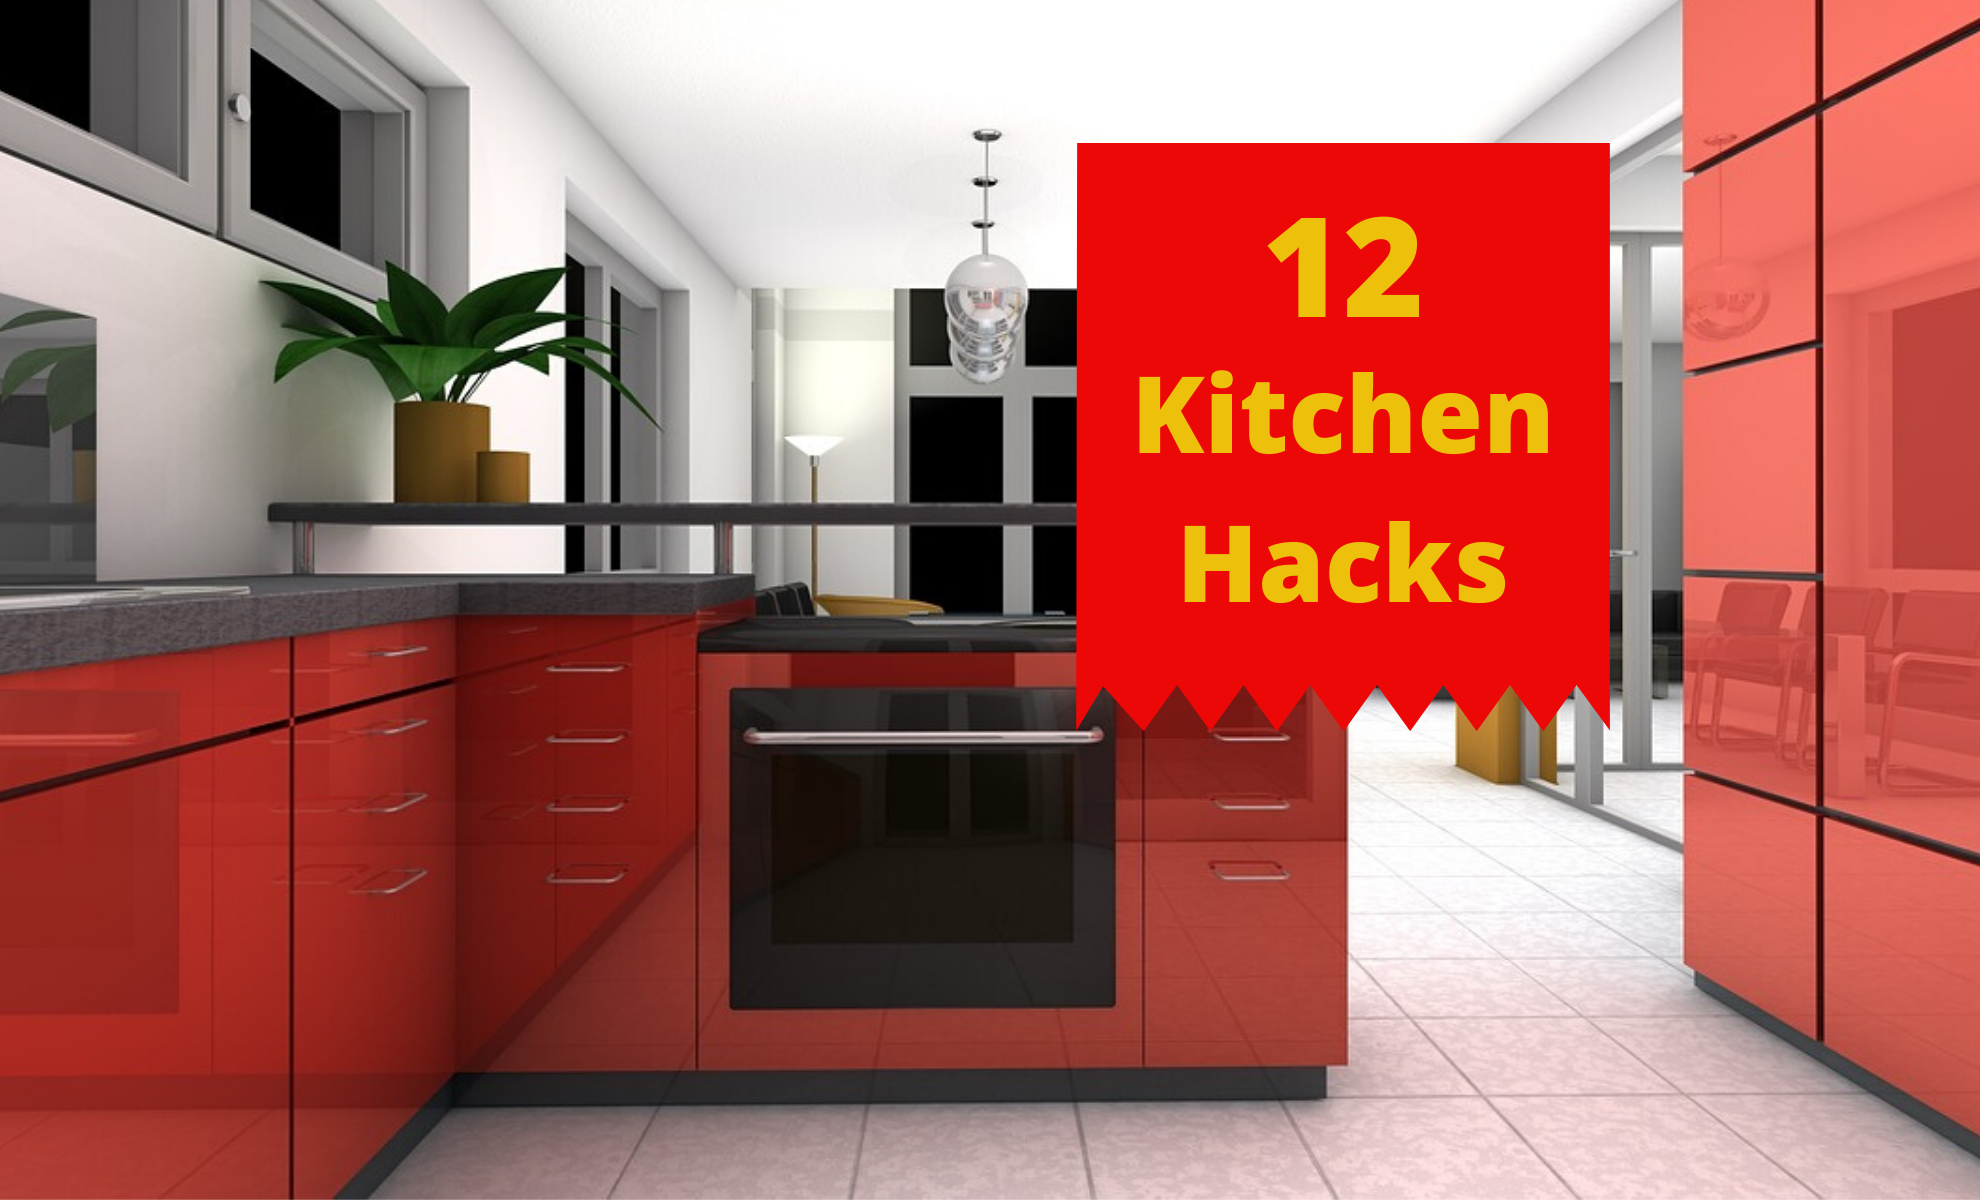 12 Kitchen Hacks to Get Organised and Save Time and Money